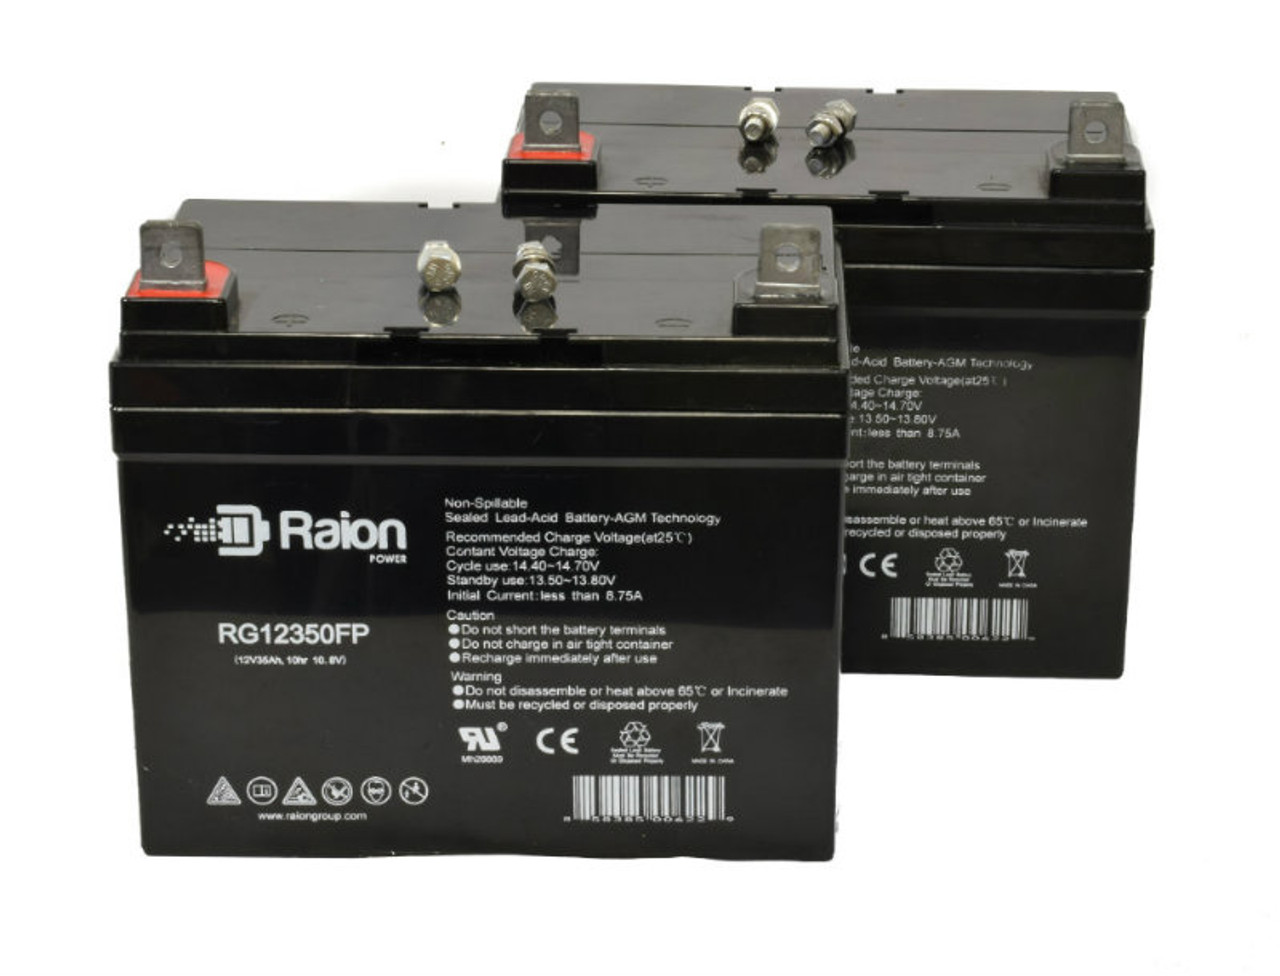 Raion Power RG12350FP Replacement Wheelchair Battery For Quickie Targa 14 Inch U1 AGM (2 Pack)